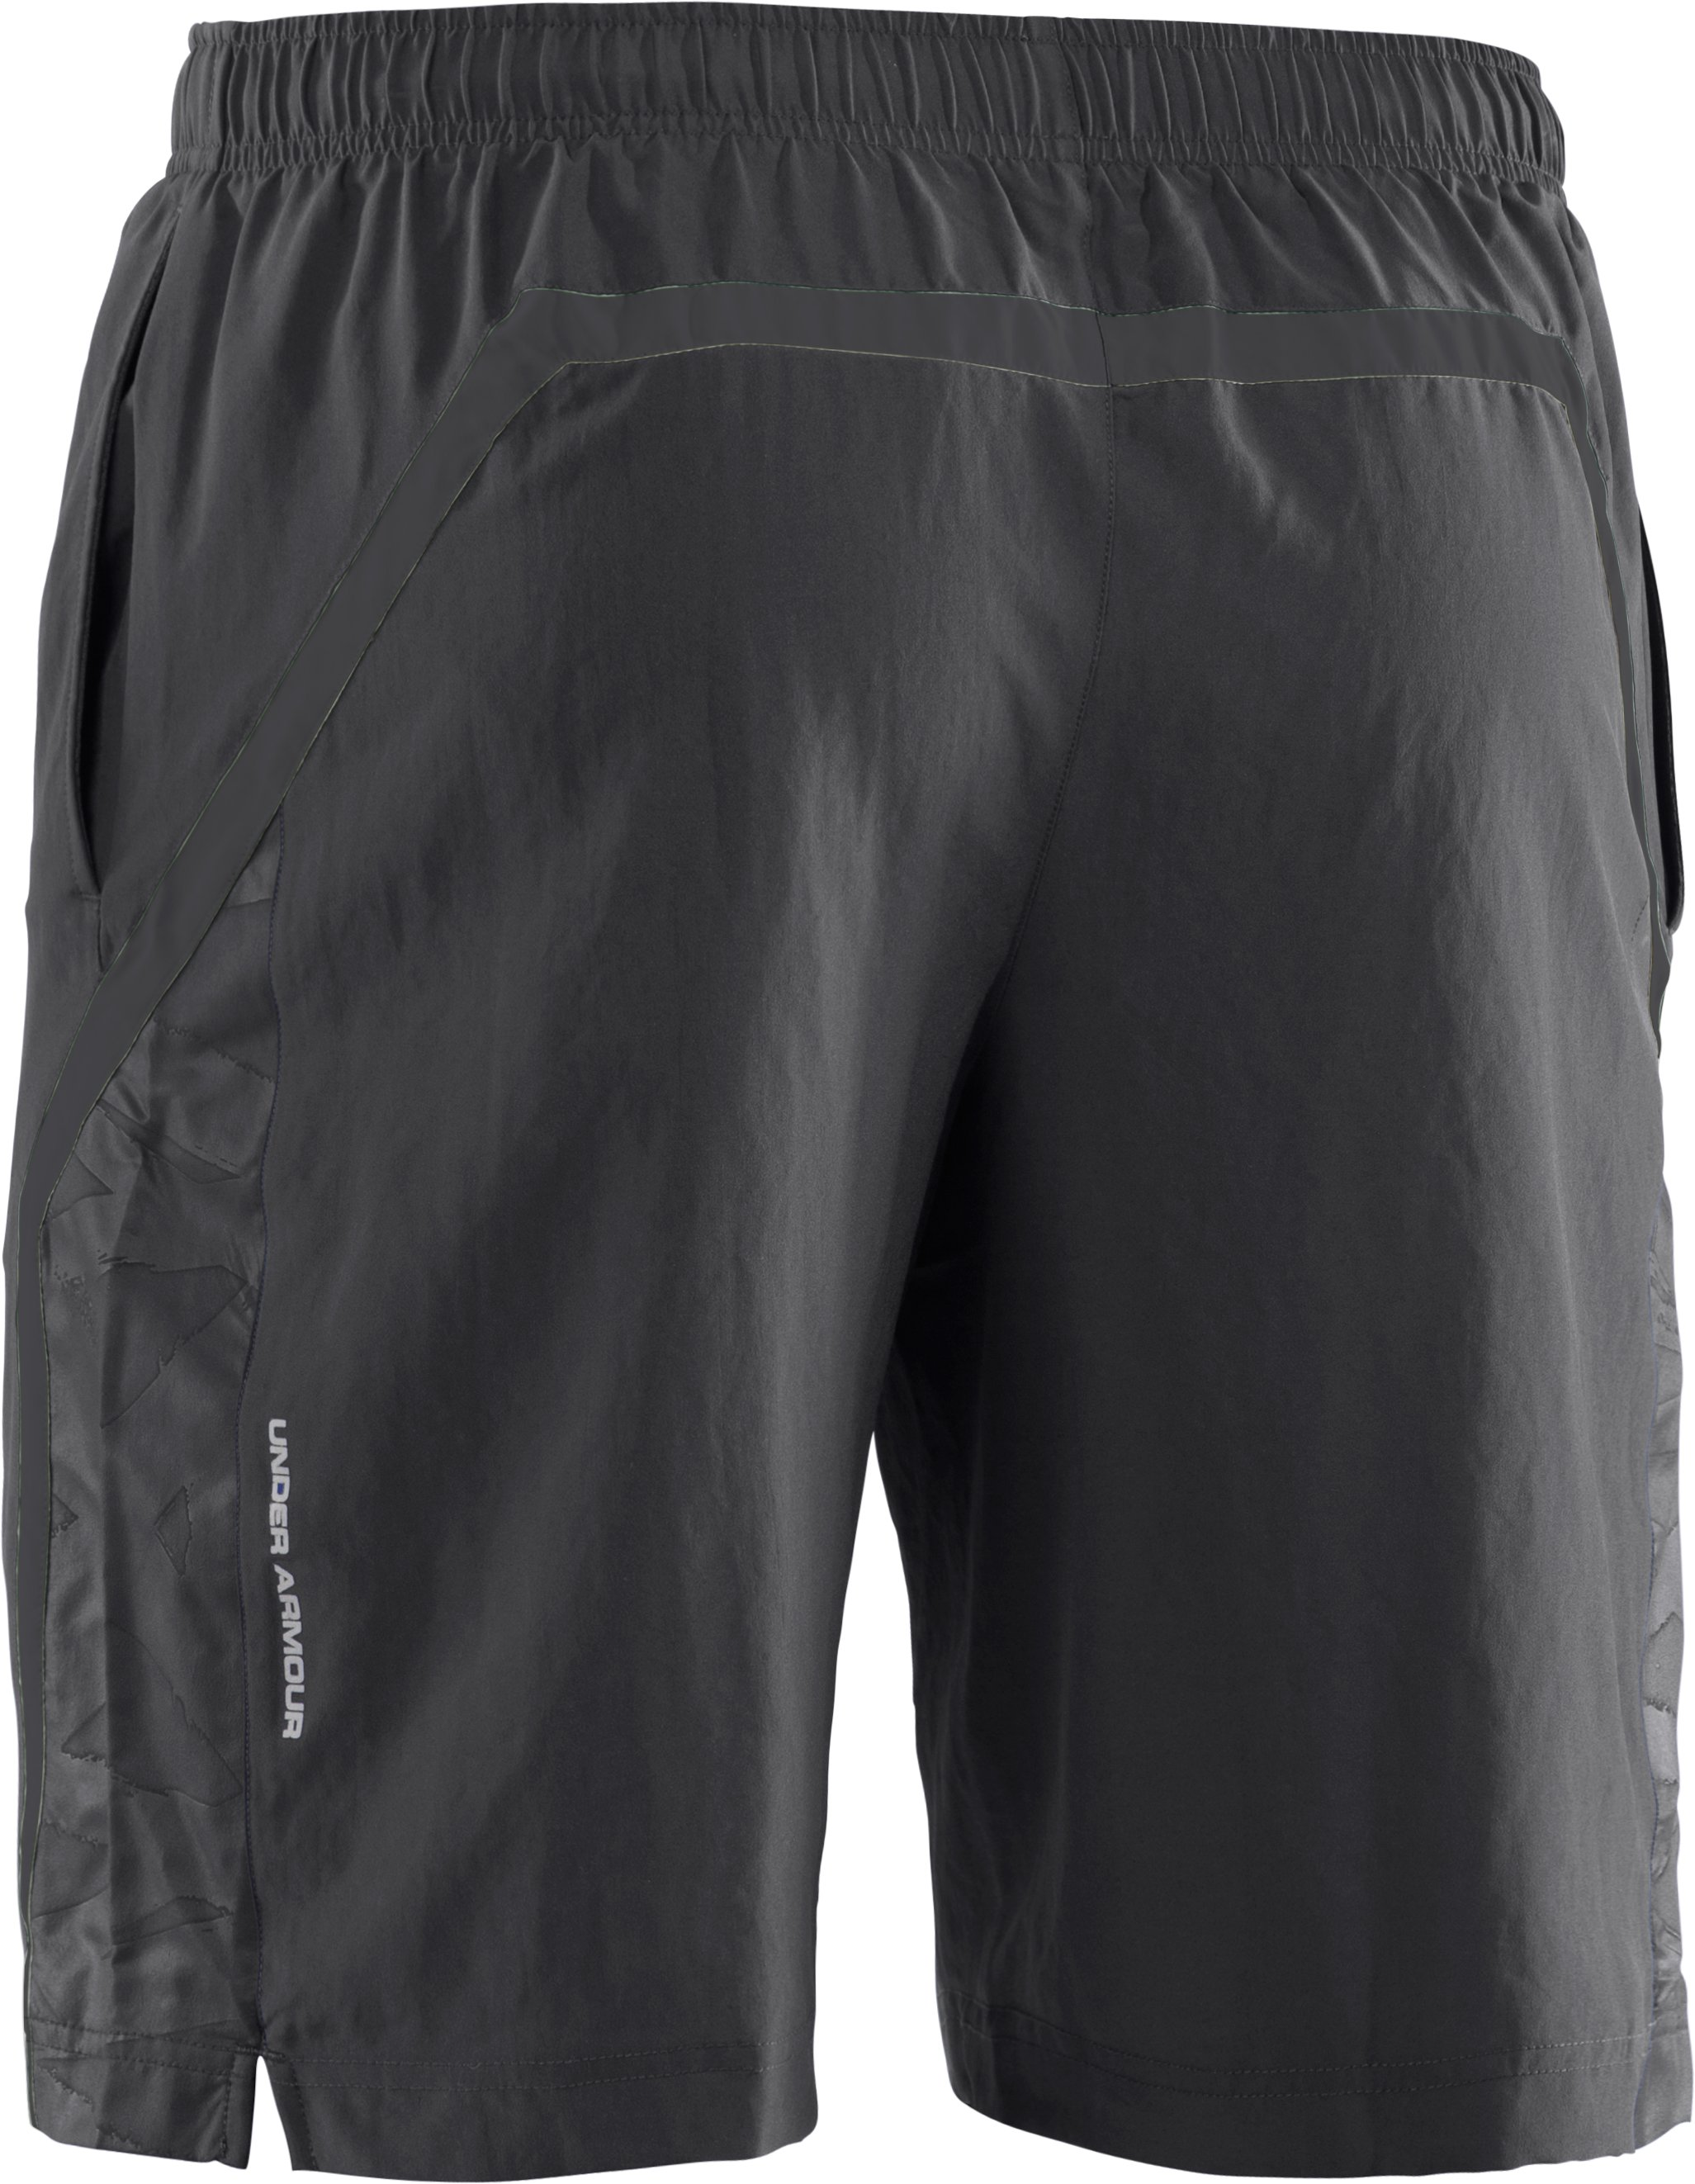 "Men's UA Escape 9"" Woven Shorts, Graphite"